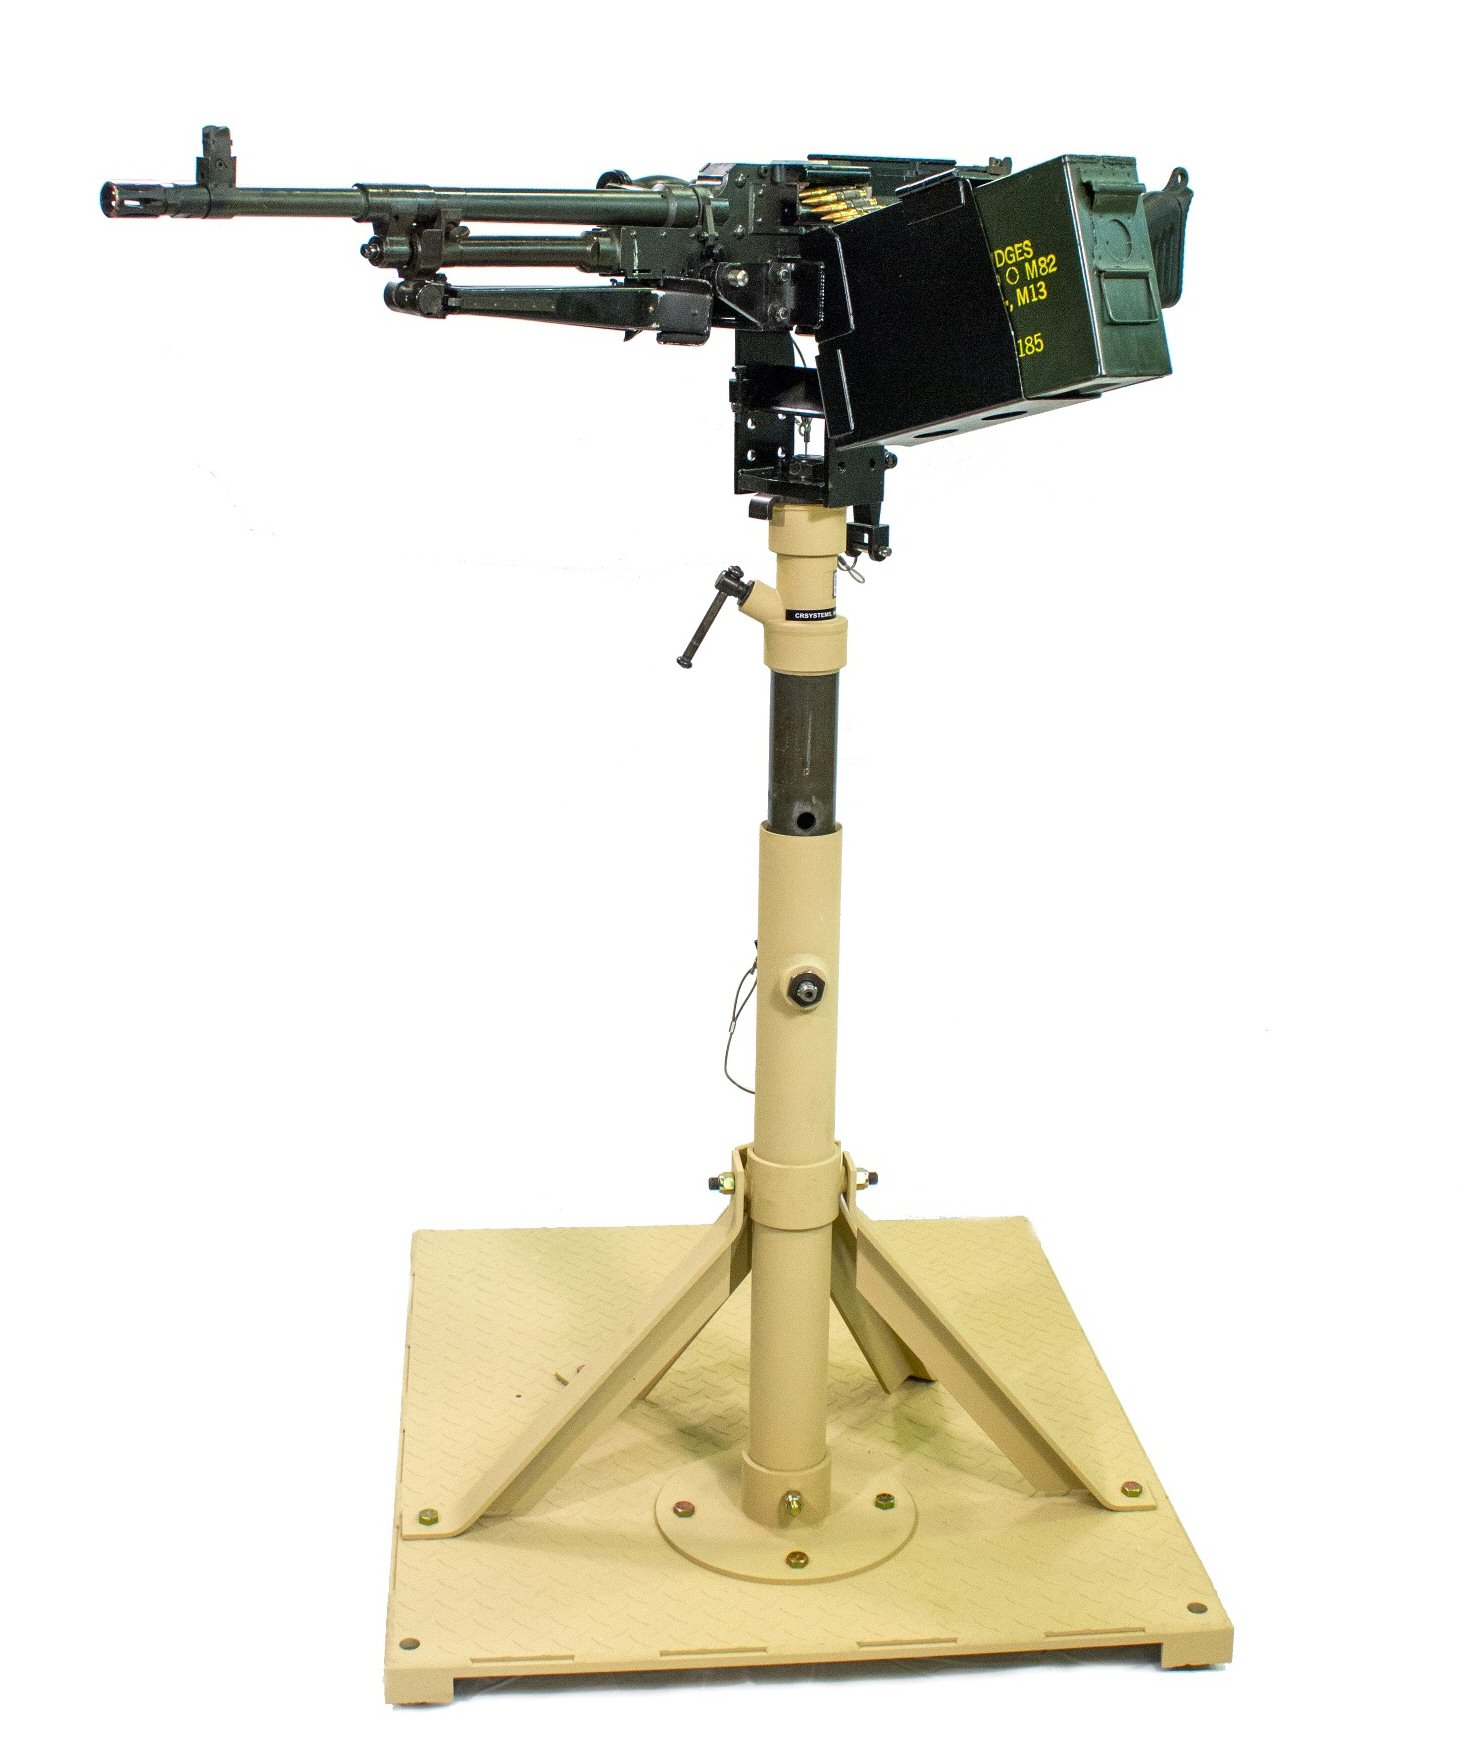 crsystems-m6-pedestal-with-r240-mount-and-m240-mg-for-email